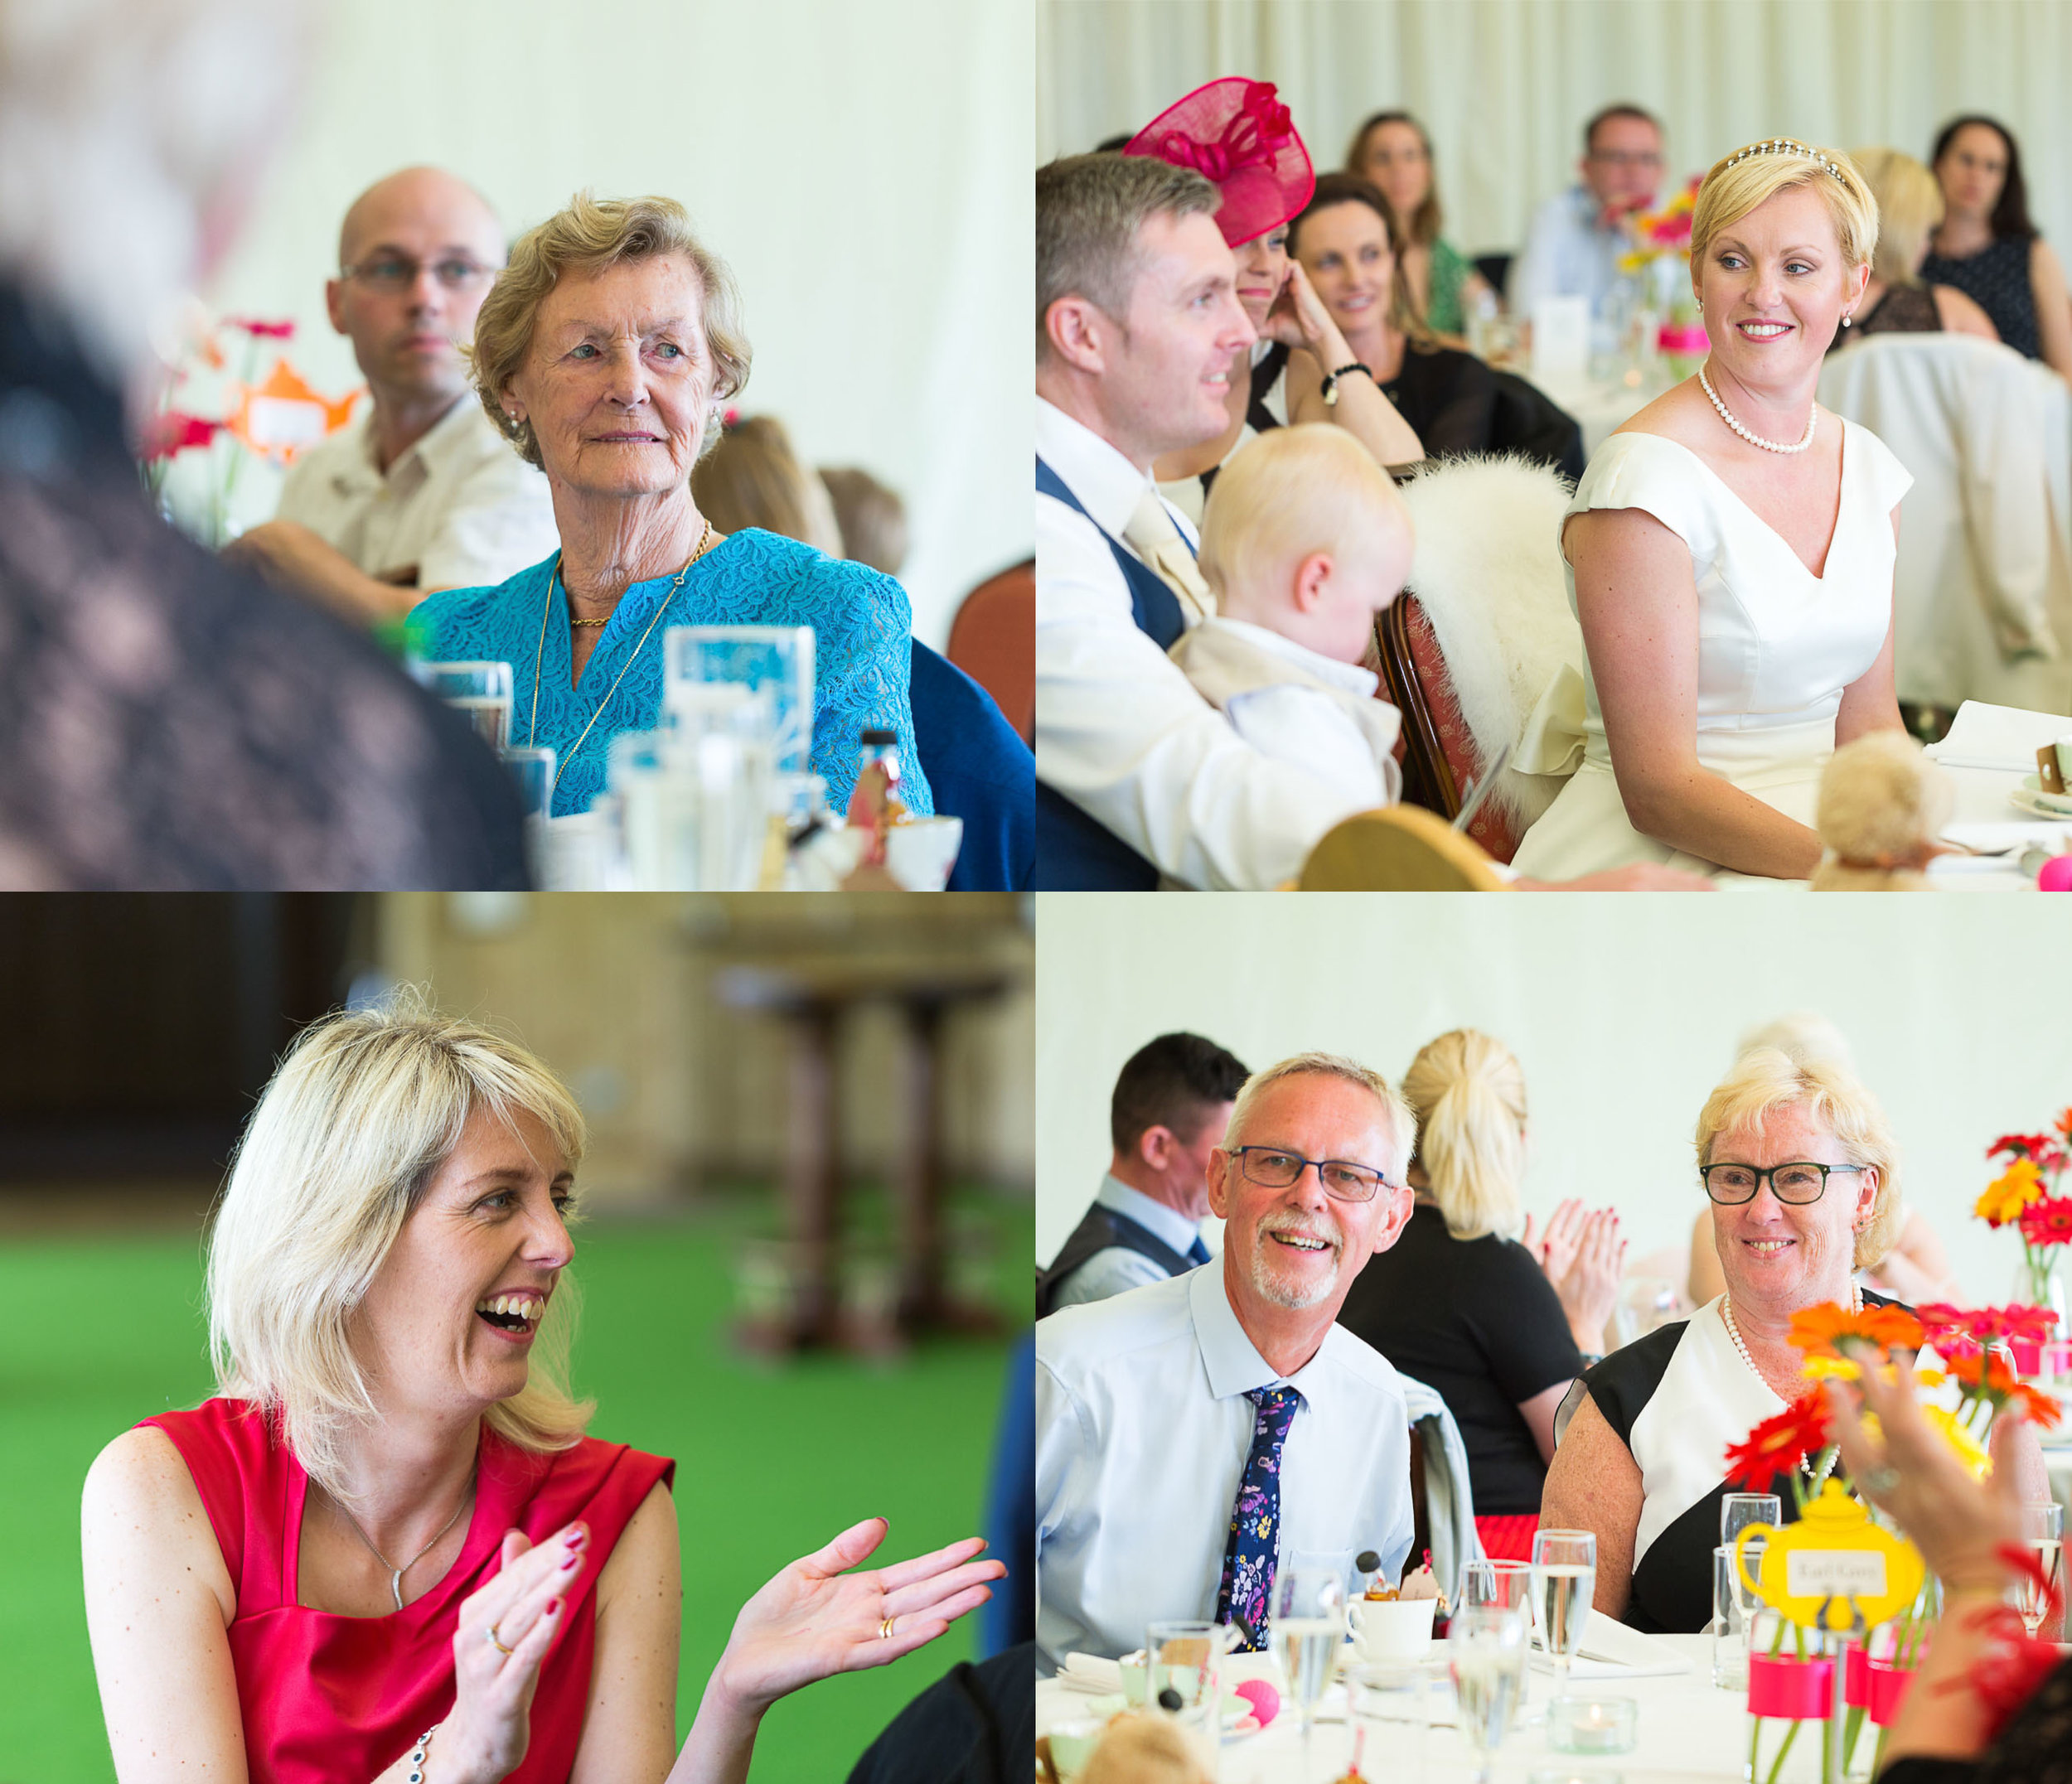 Cottrell Golf Club wedding photos. Wedding photographer Vale of Glamorgan, cardiff, south wales,